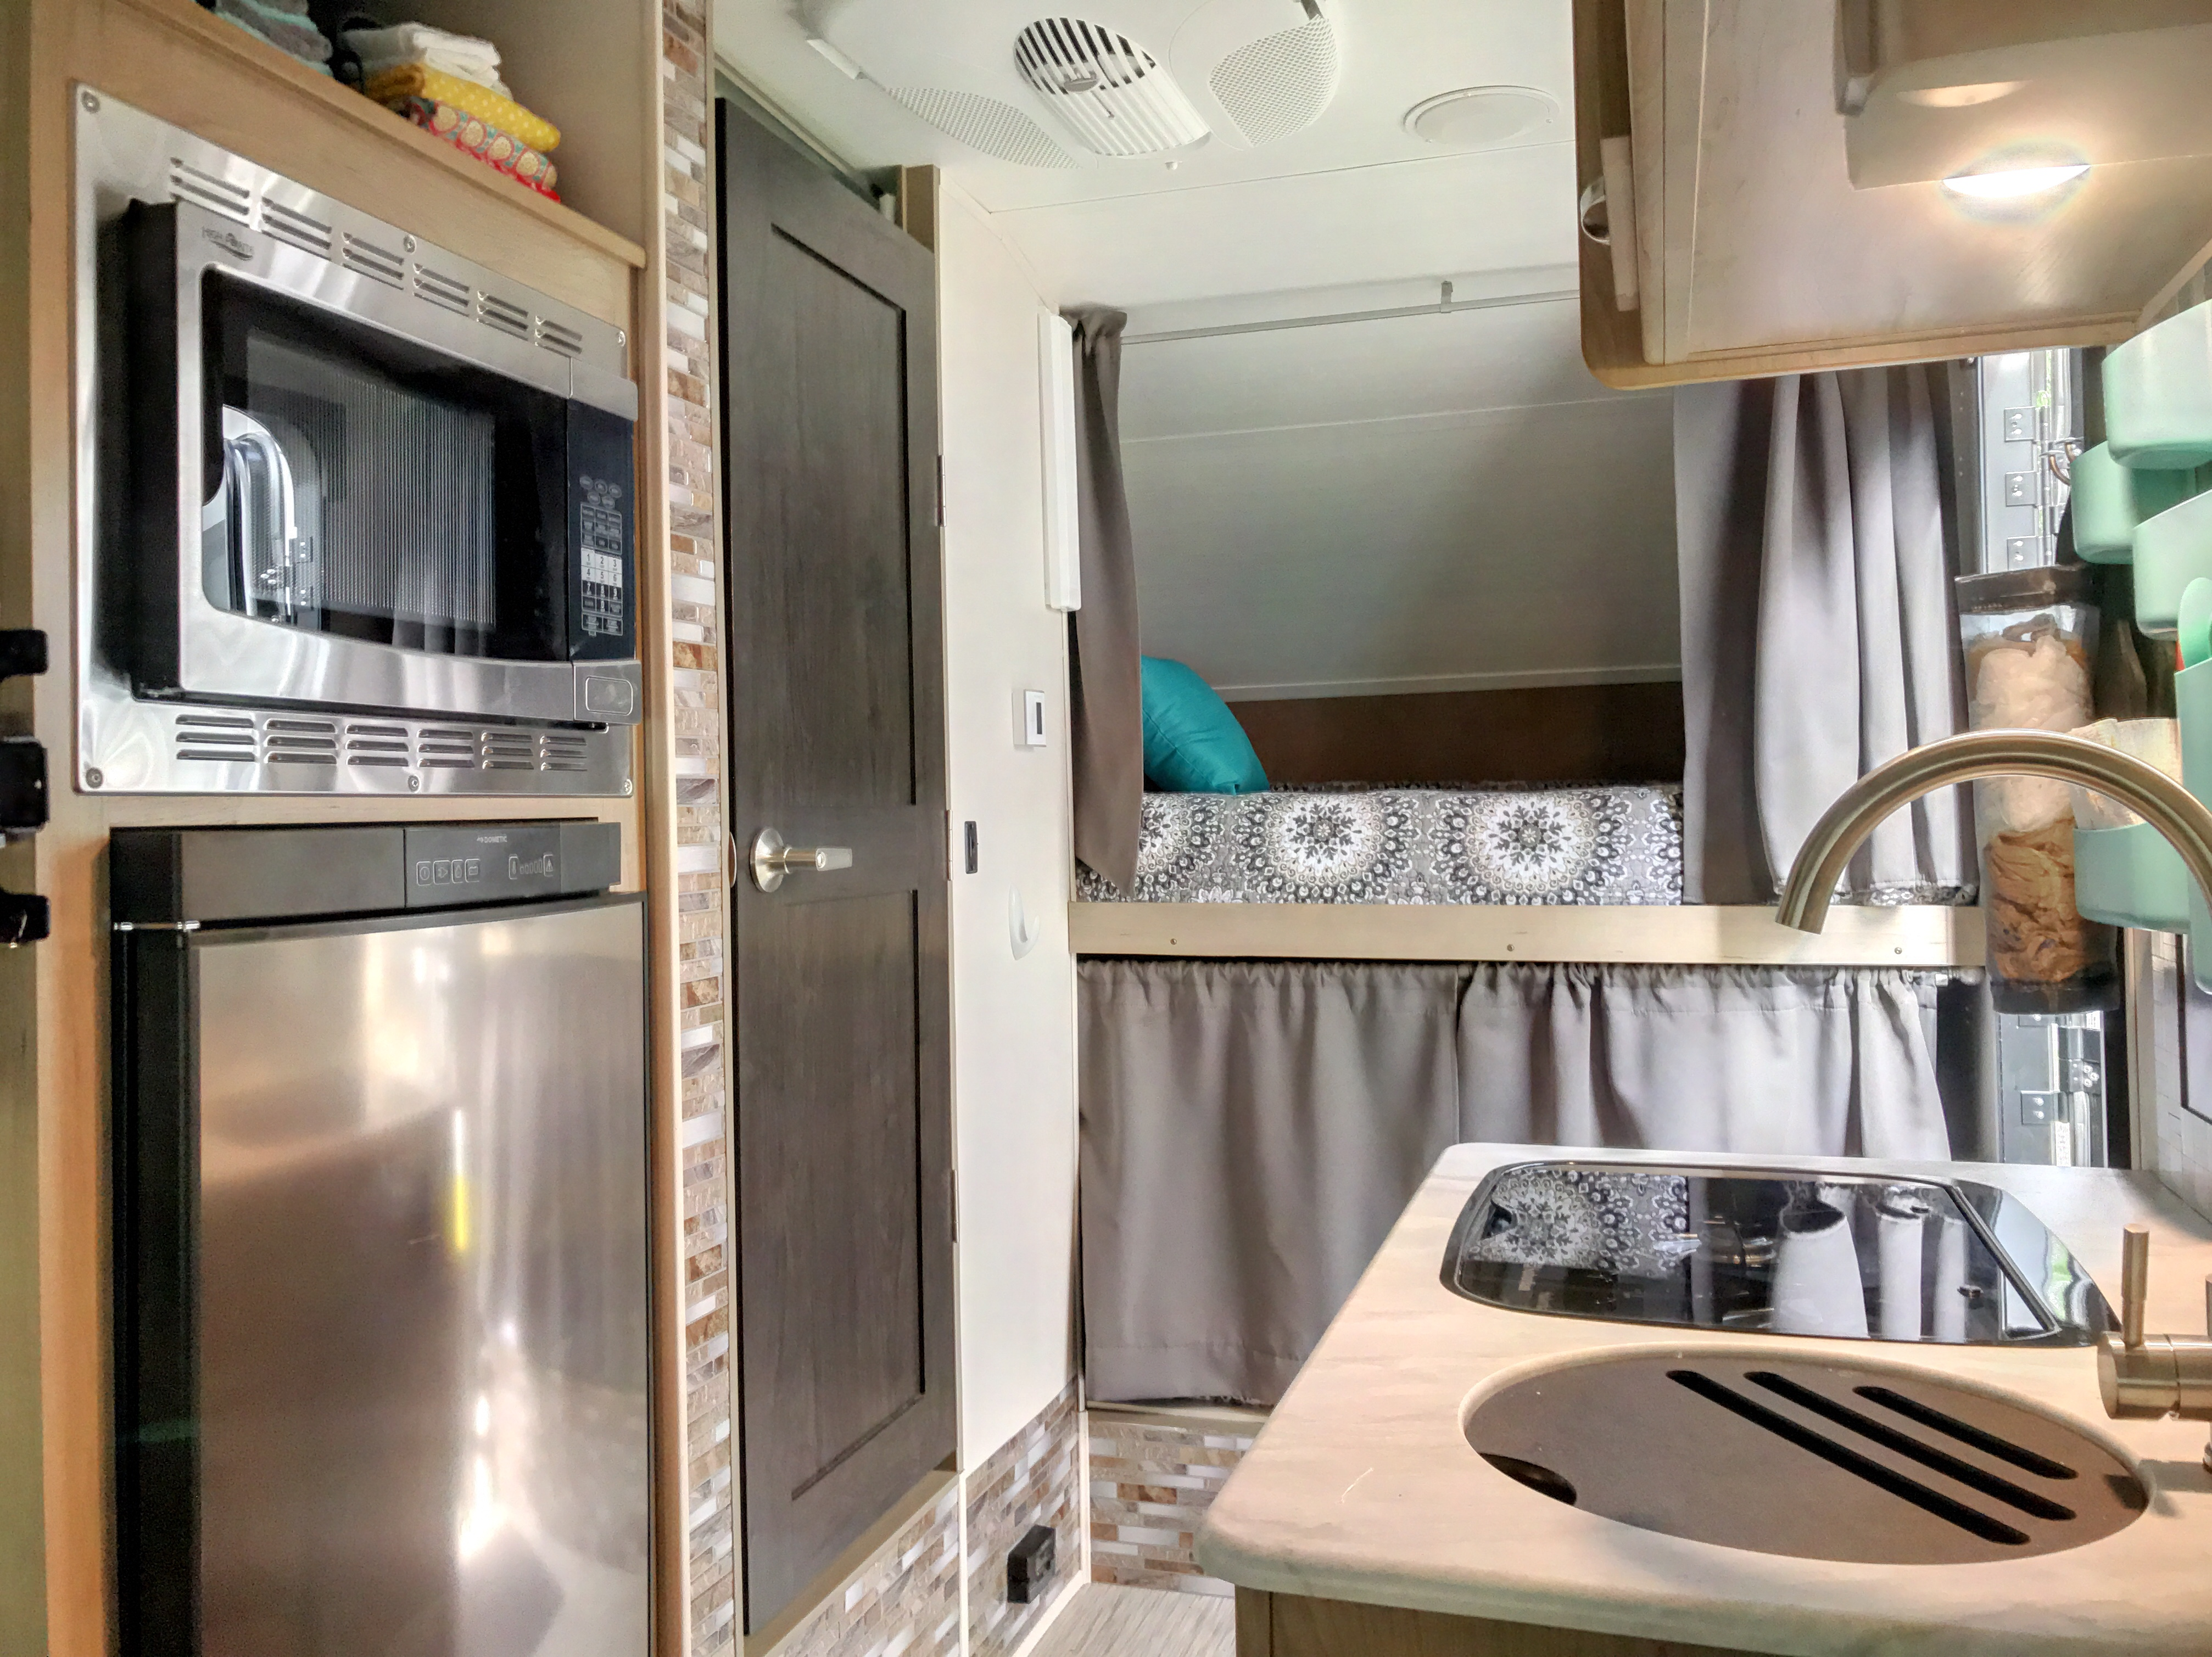 The cook top is covered with a glass top that raises when cook top is in use, but provides a smooth surface when when not in use.  The sink also has a cover to provide more counter space when sink is not in use.. Forest River R-Pod 172 2019